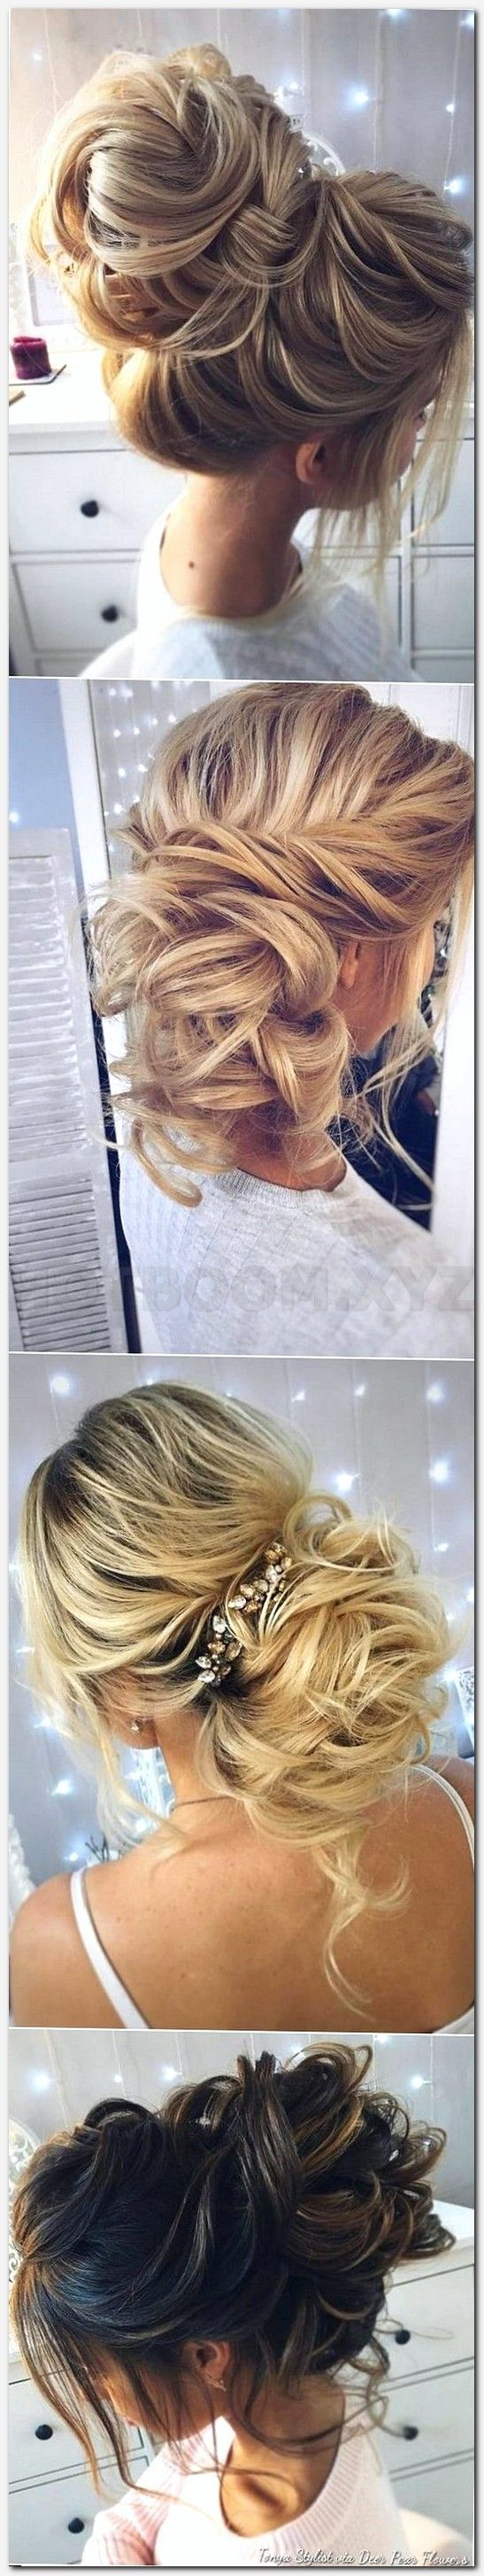 hairstyles for flat thin hair, short spiky haircuts for women, hairstyles for long braids, braiding with style, bridal updos for long hair, simple fancy hairstyles, easy quick hairstyles for kids, hairstyles for very fine thin straight hair, medium length prom hairstyles, hair design short hair, new hairstyles 2017 women, straight hair bob hairstyles, medium haircuts for 2017, hairstyle different, new haircut women's 2017, hair cut in a bob #shorthairstylesfine #easyhairstylesquick